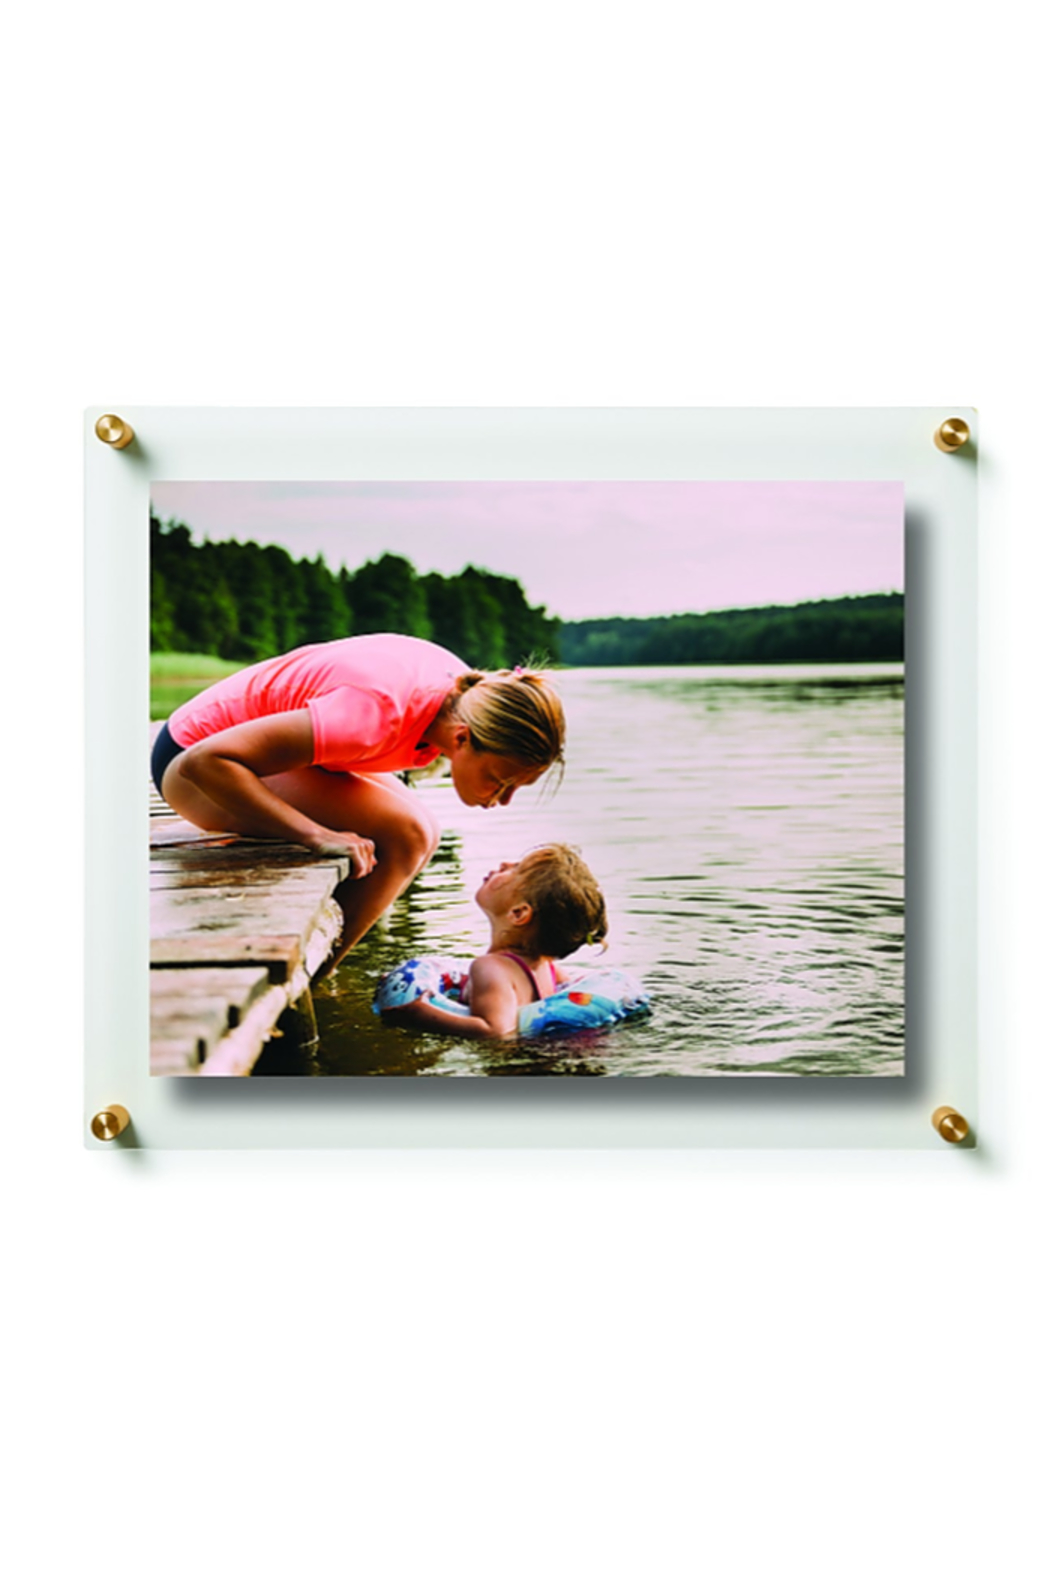 The Birds Nest 8X10/9X12-DOUBLE PANEL FLOATING FRAME(GLASS MEASURES 12X15) - Main Image